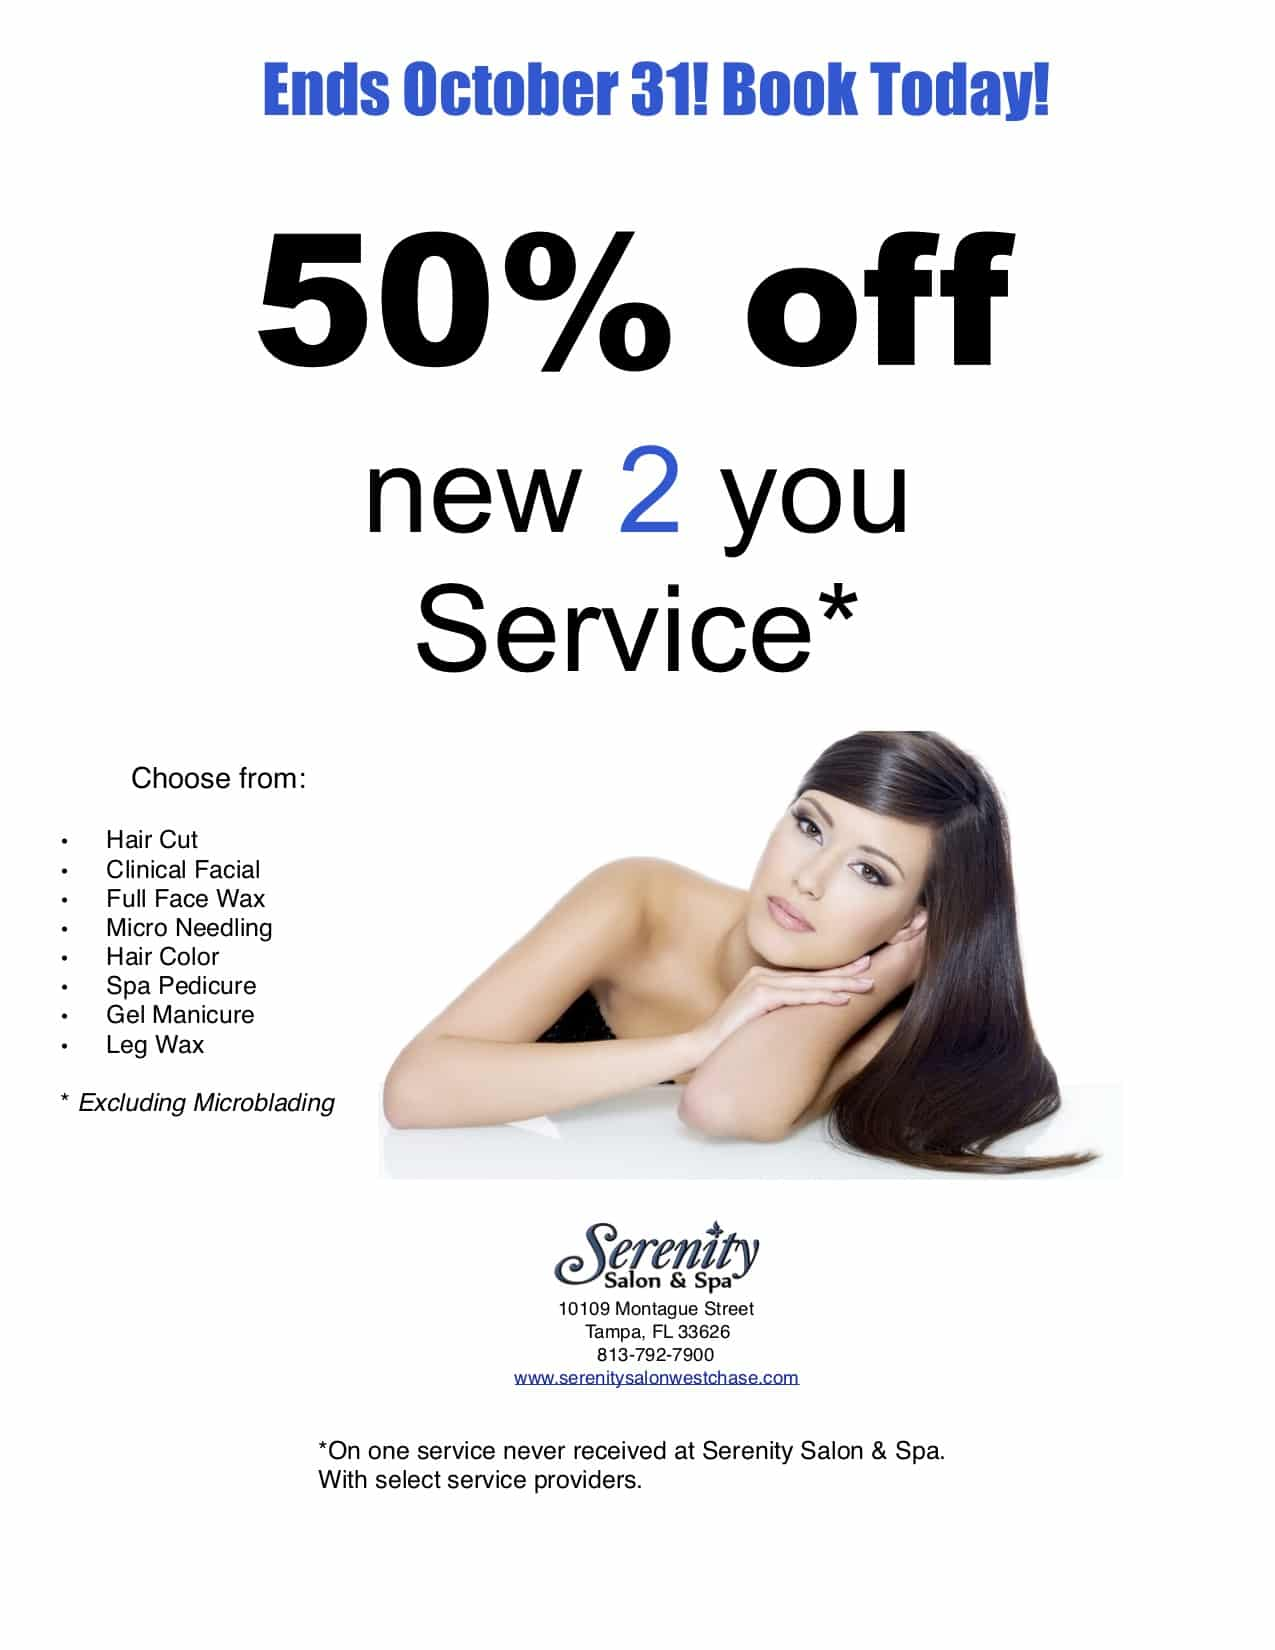 Specials And Events Events At Tampas Premier Massage Spa